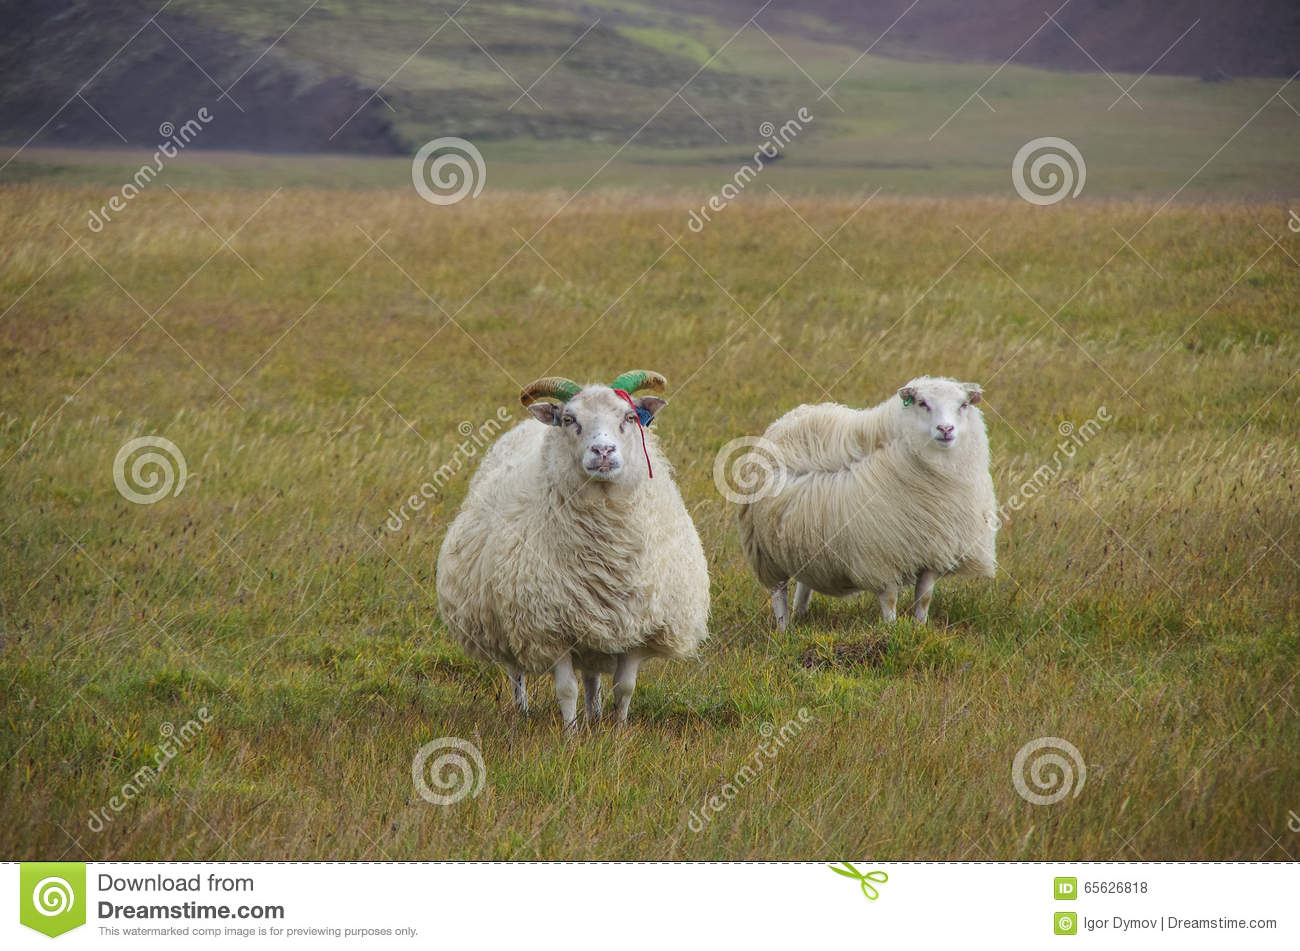 Moutons sous le vent violent